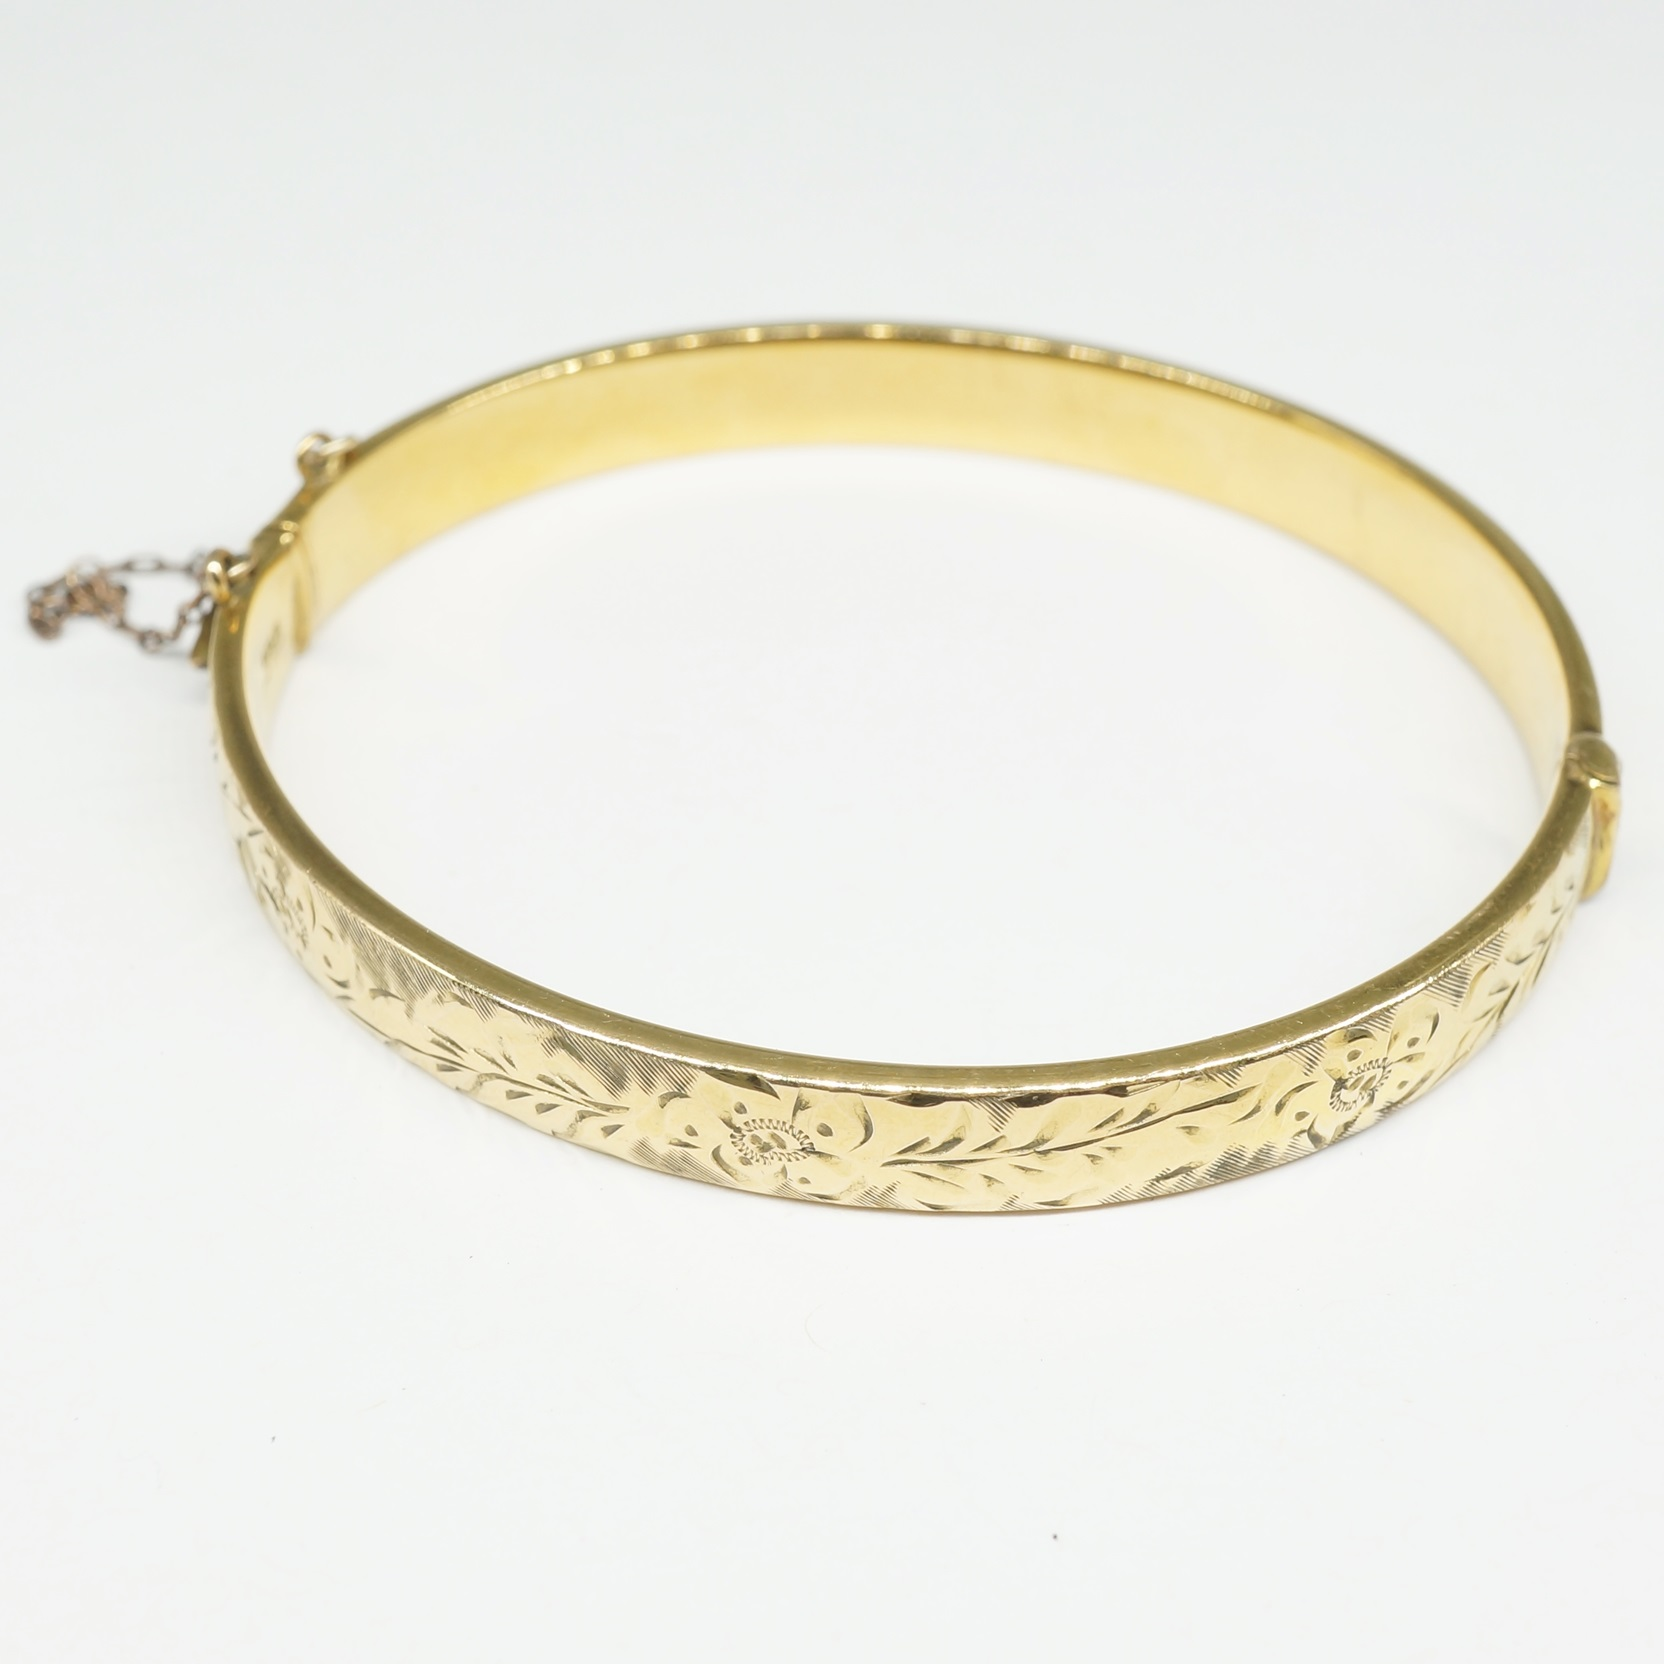 'Rolled Gold Hinged Bangle'